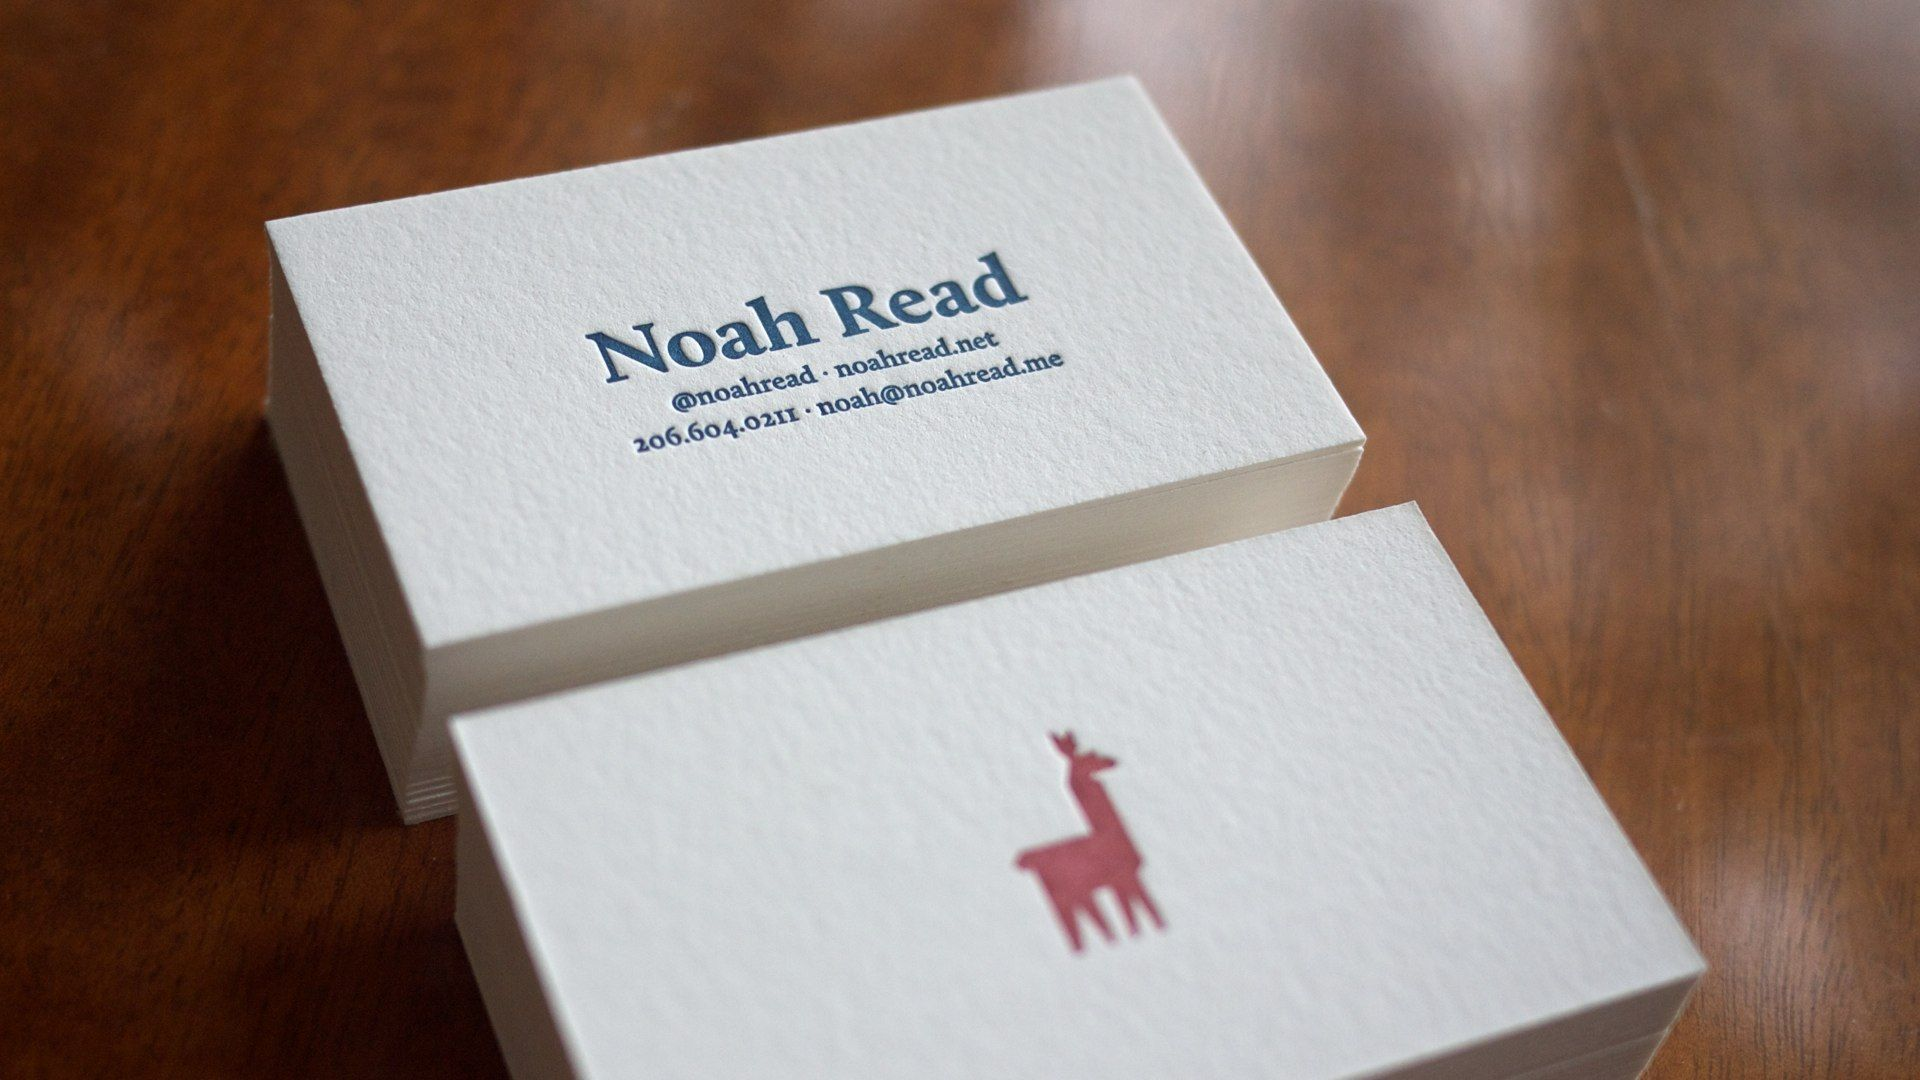 personal business cards ideas - Google Search | Graphic Production ...